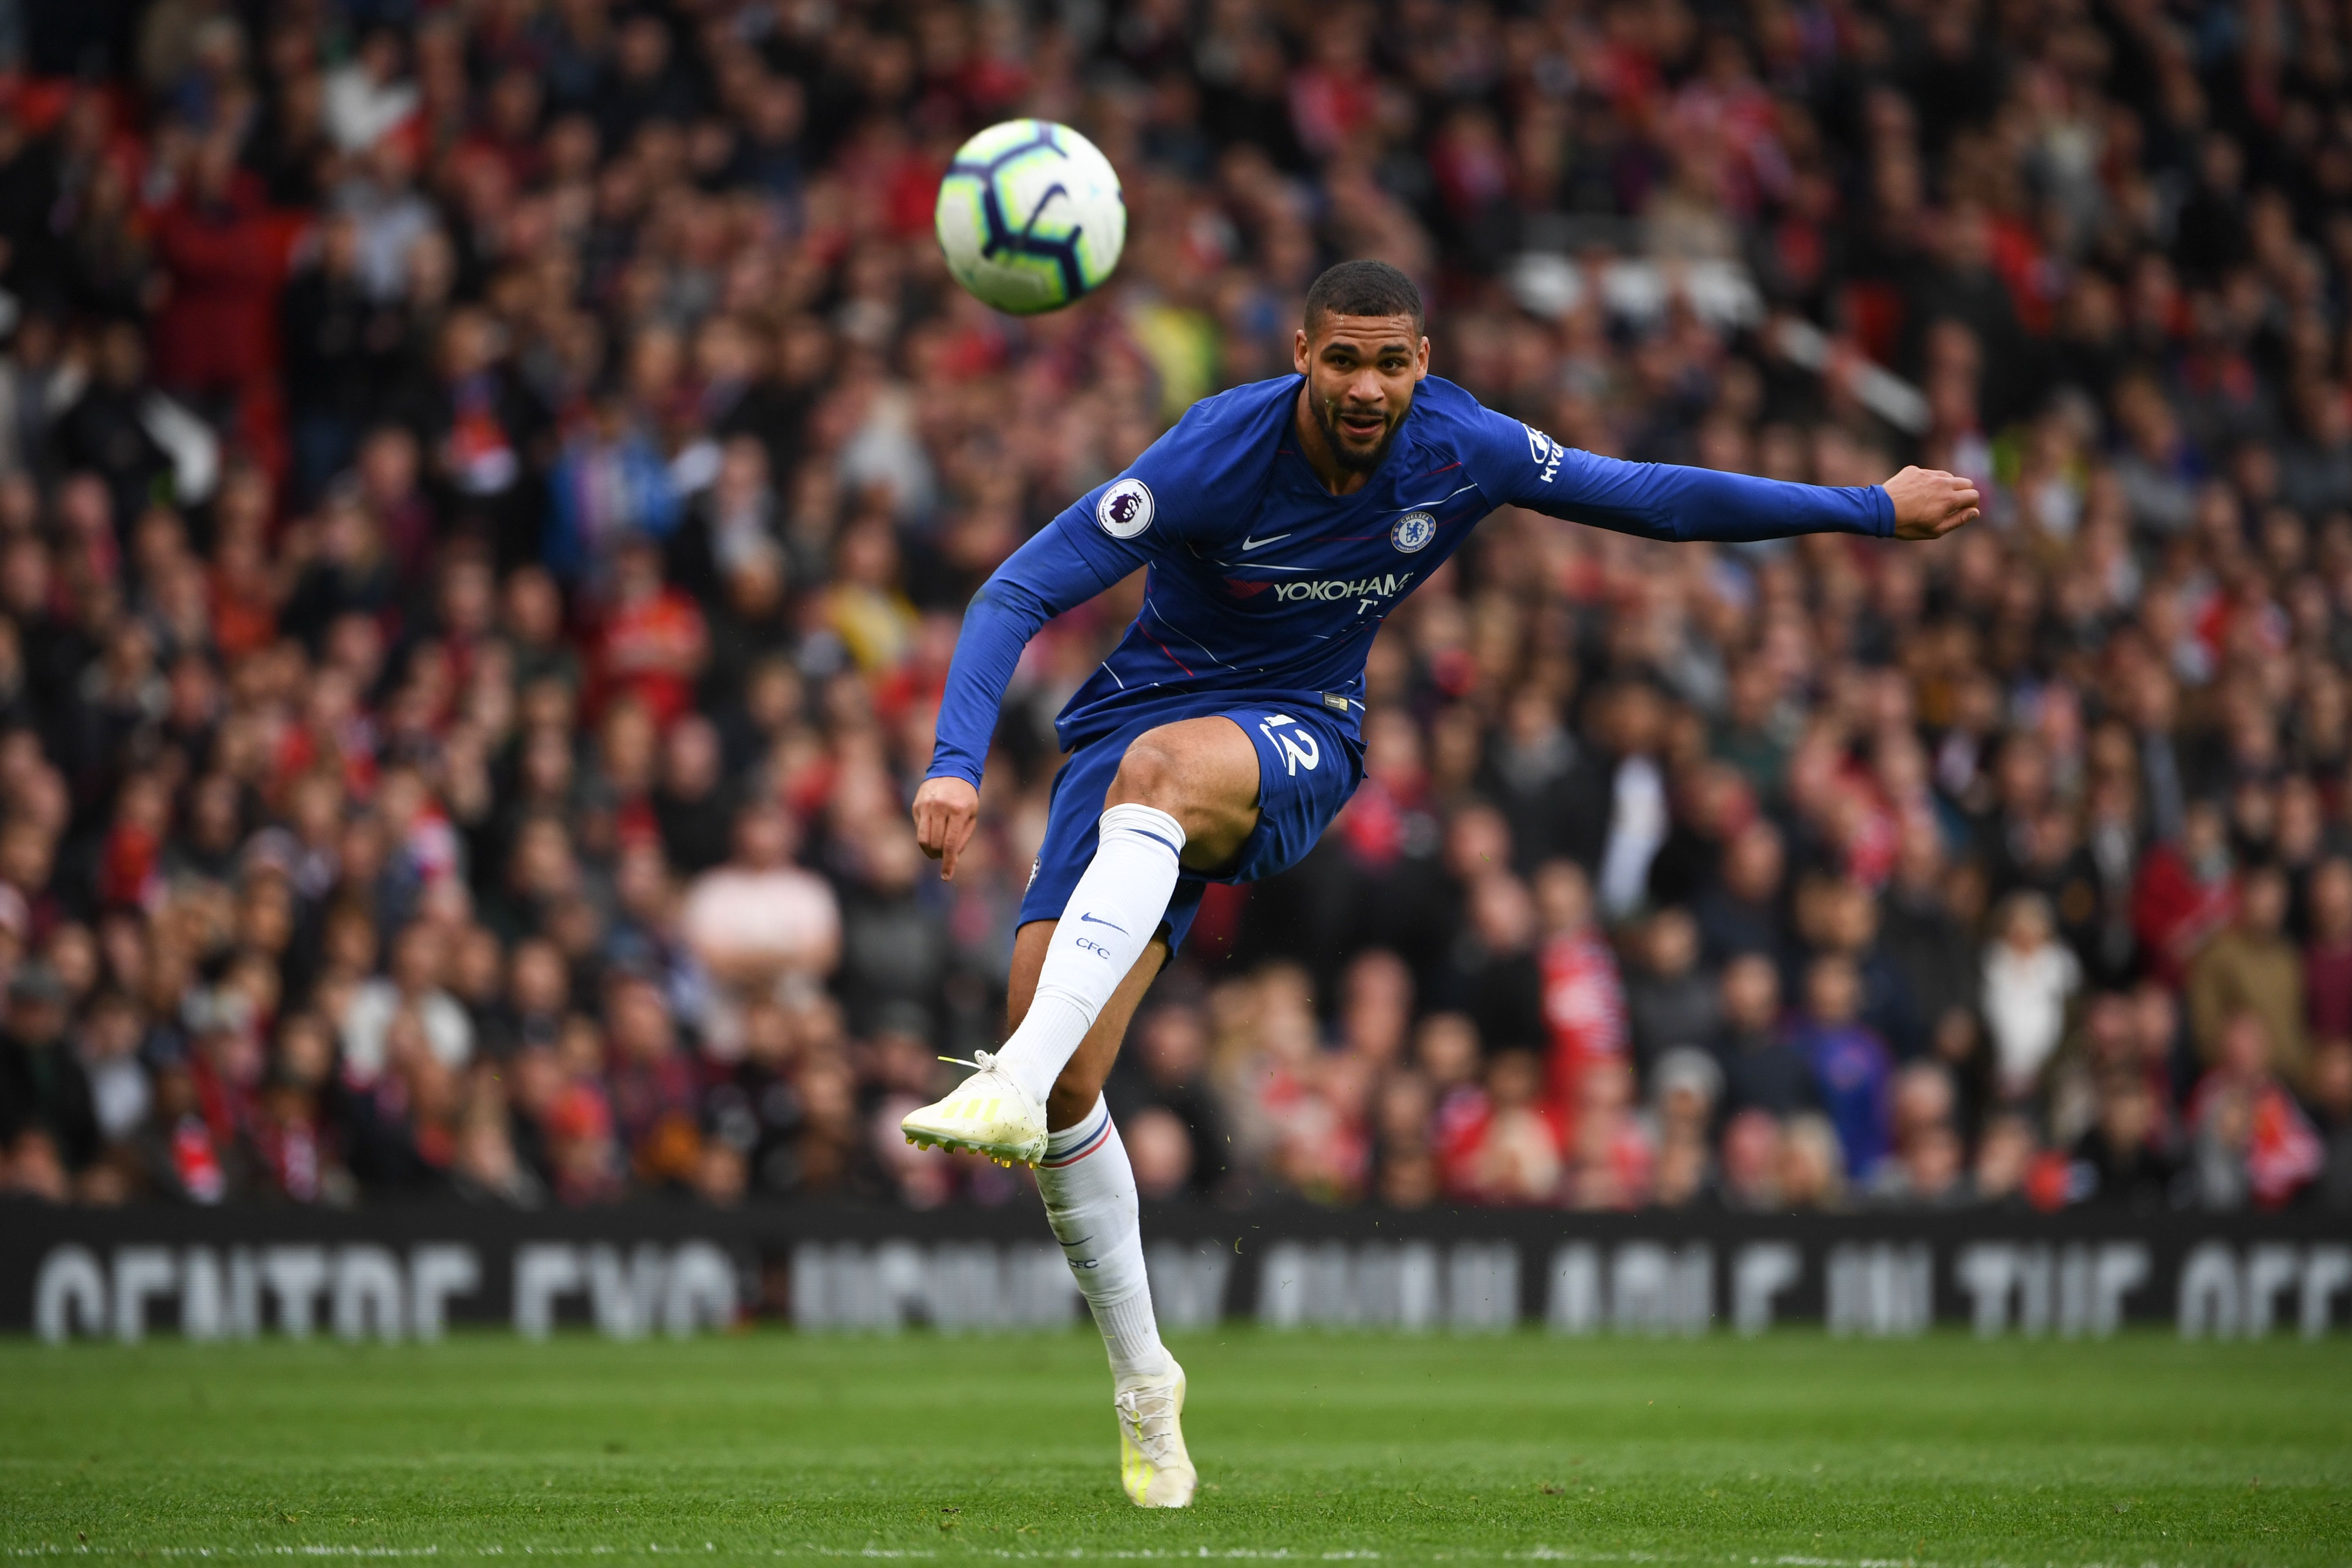 Ruben Loftus-Cheek Is An Important Chelsea Player - Loftus-Cheek in action during a match